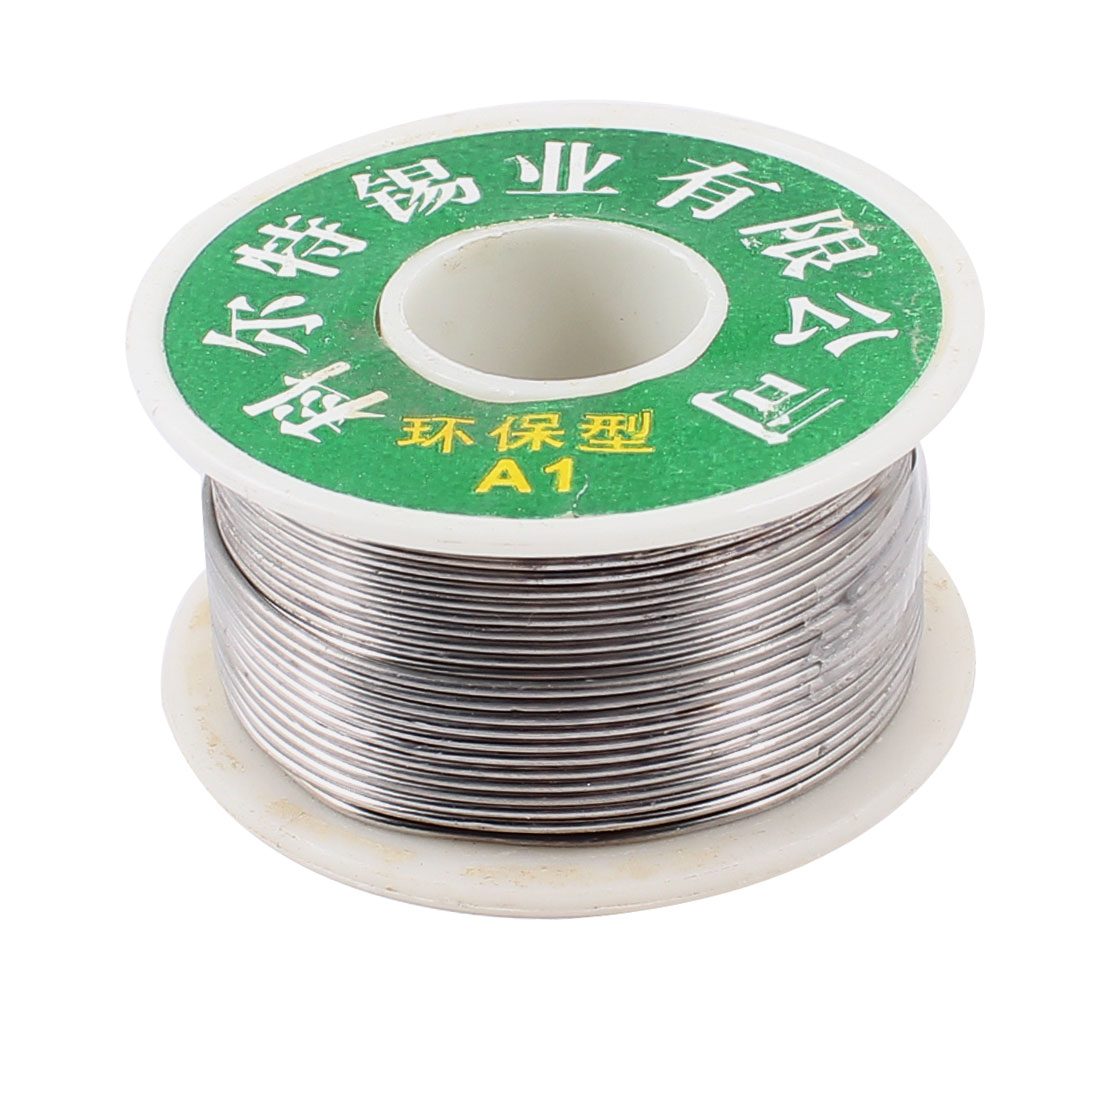 1mm 100g 63/37 Tin Lead Alloy Rosin Core Solder Wire Spool 55mm Dia Reel